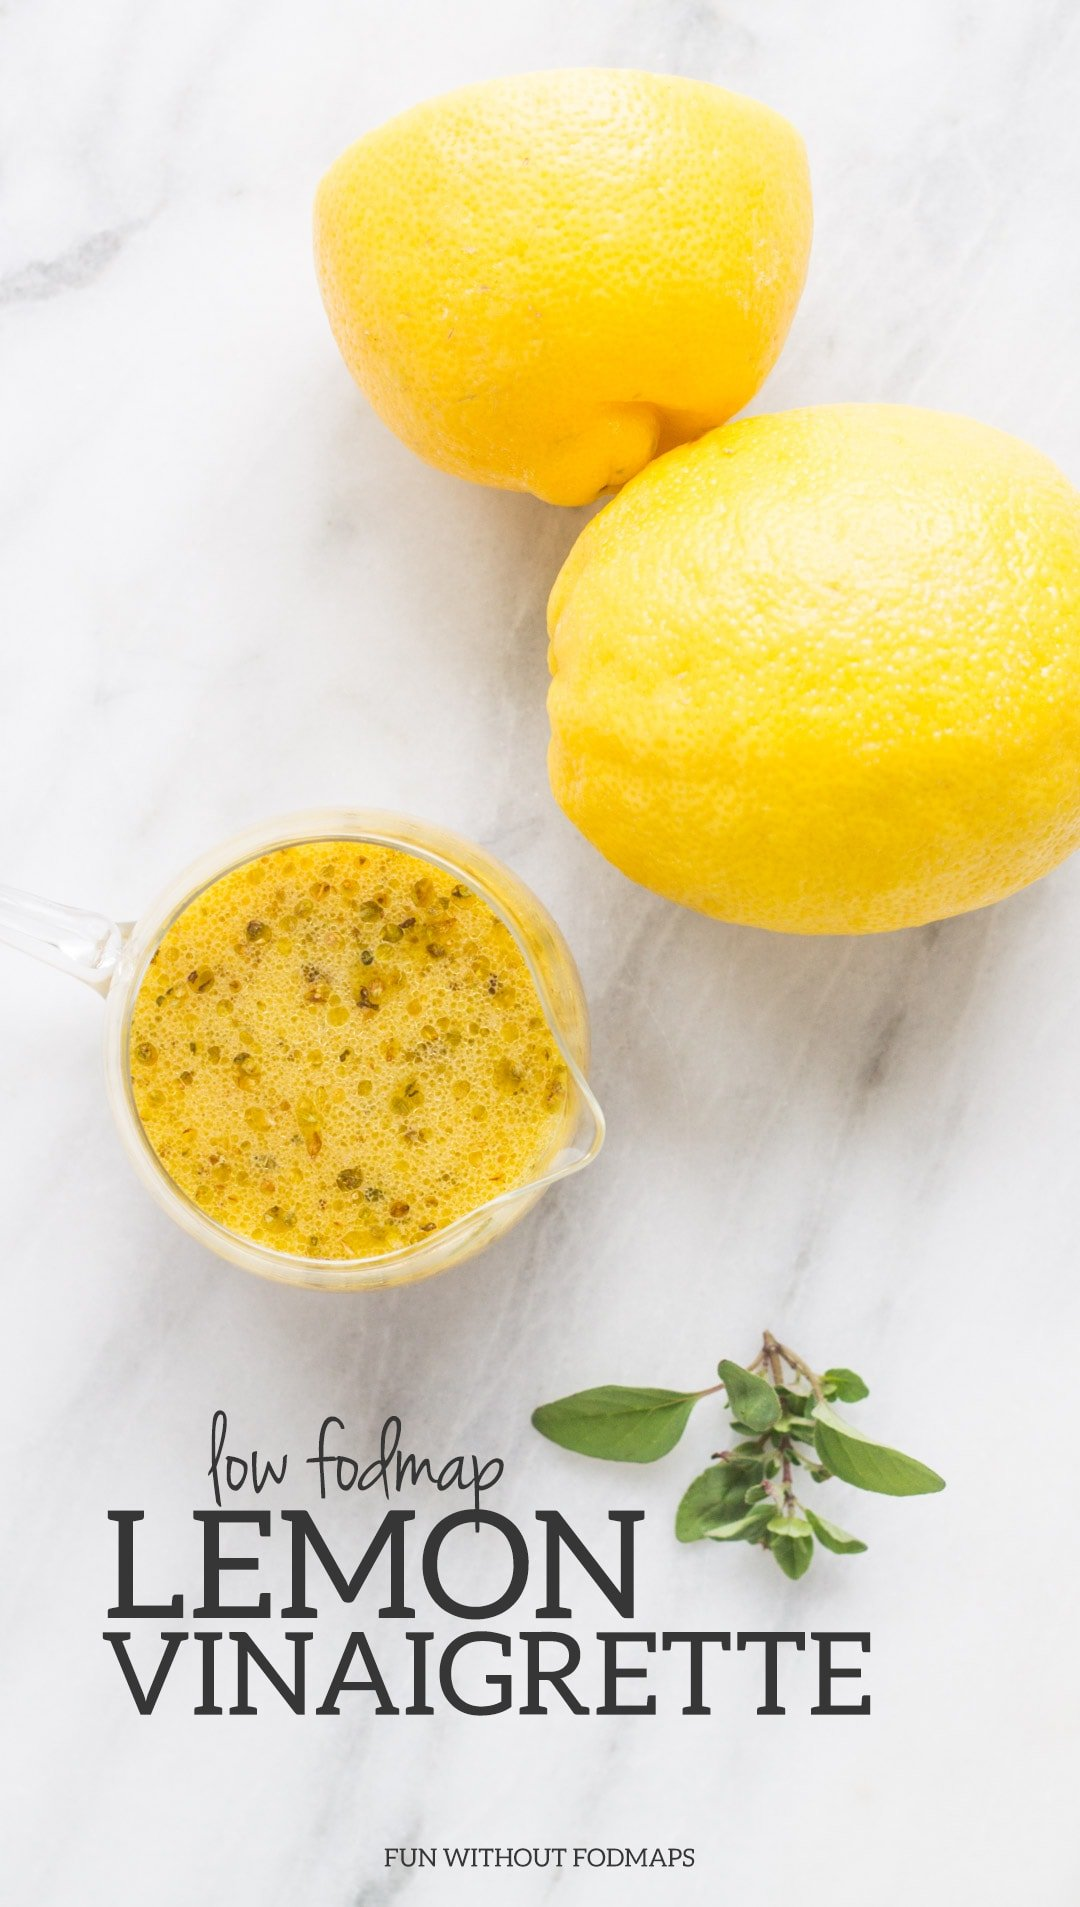 A cup of low FODMAP lemon vinaigrette surrounded by lemons and herbs